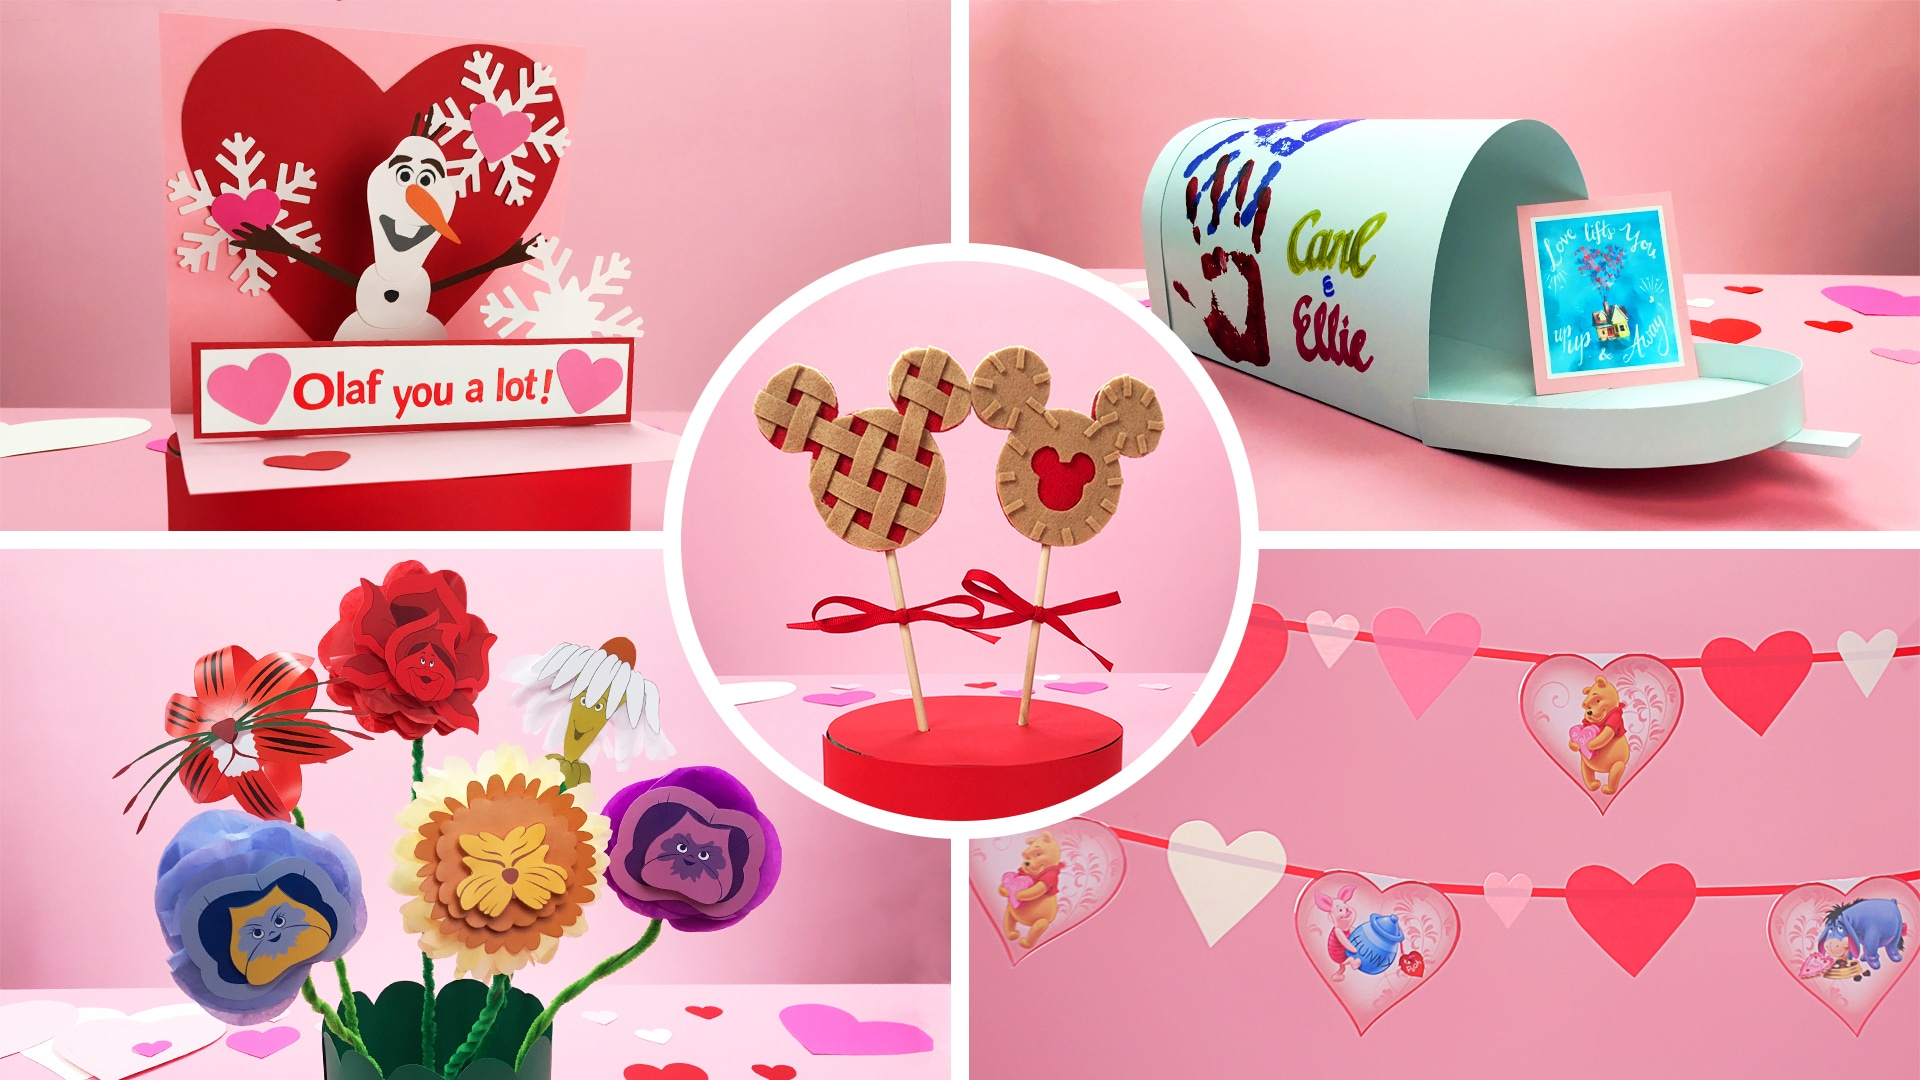 5 Easy Disney Crafts for Kids for Valentine's Day | Disney DIY by Disney Family